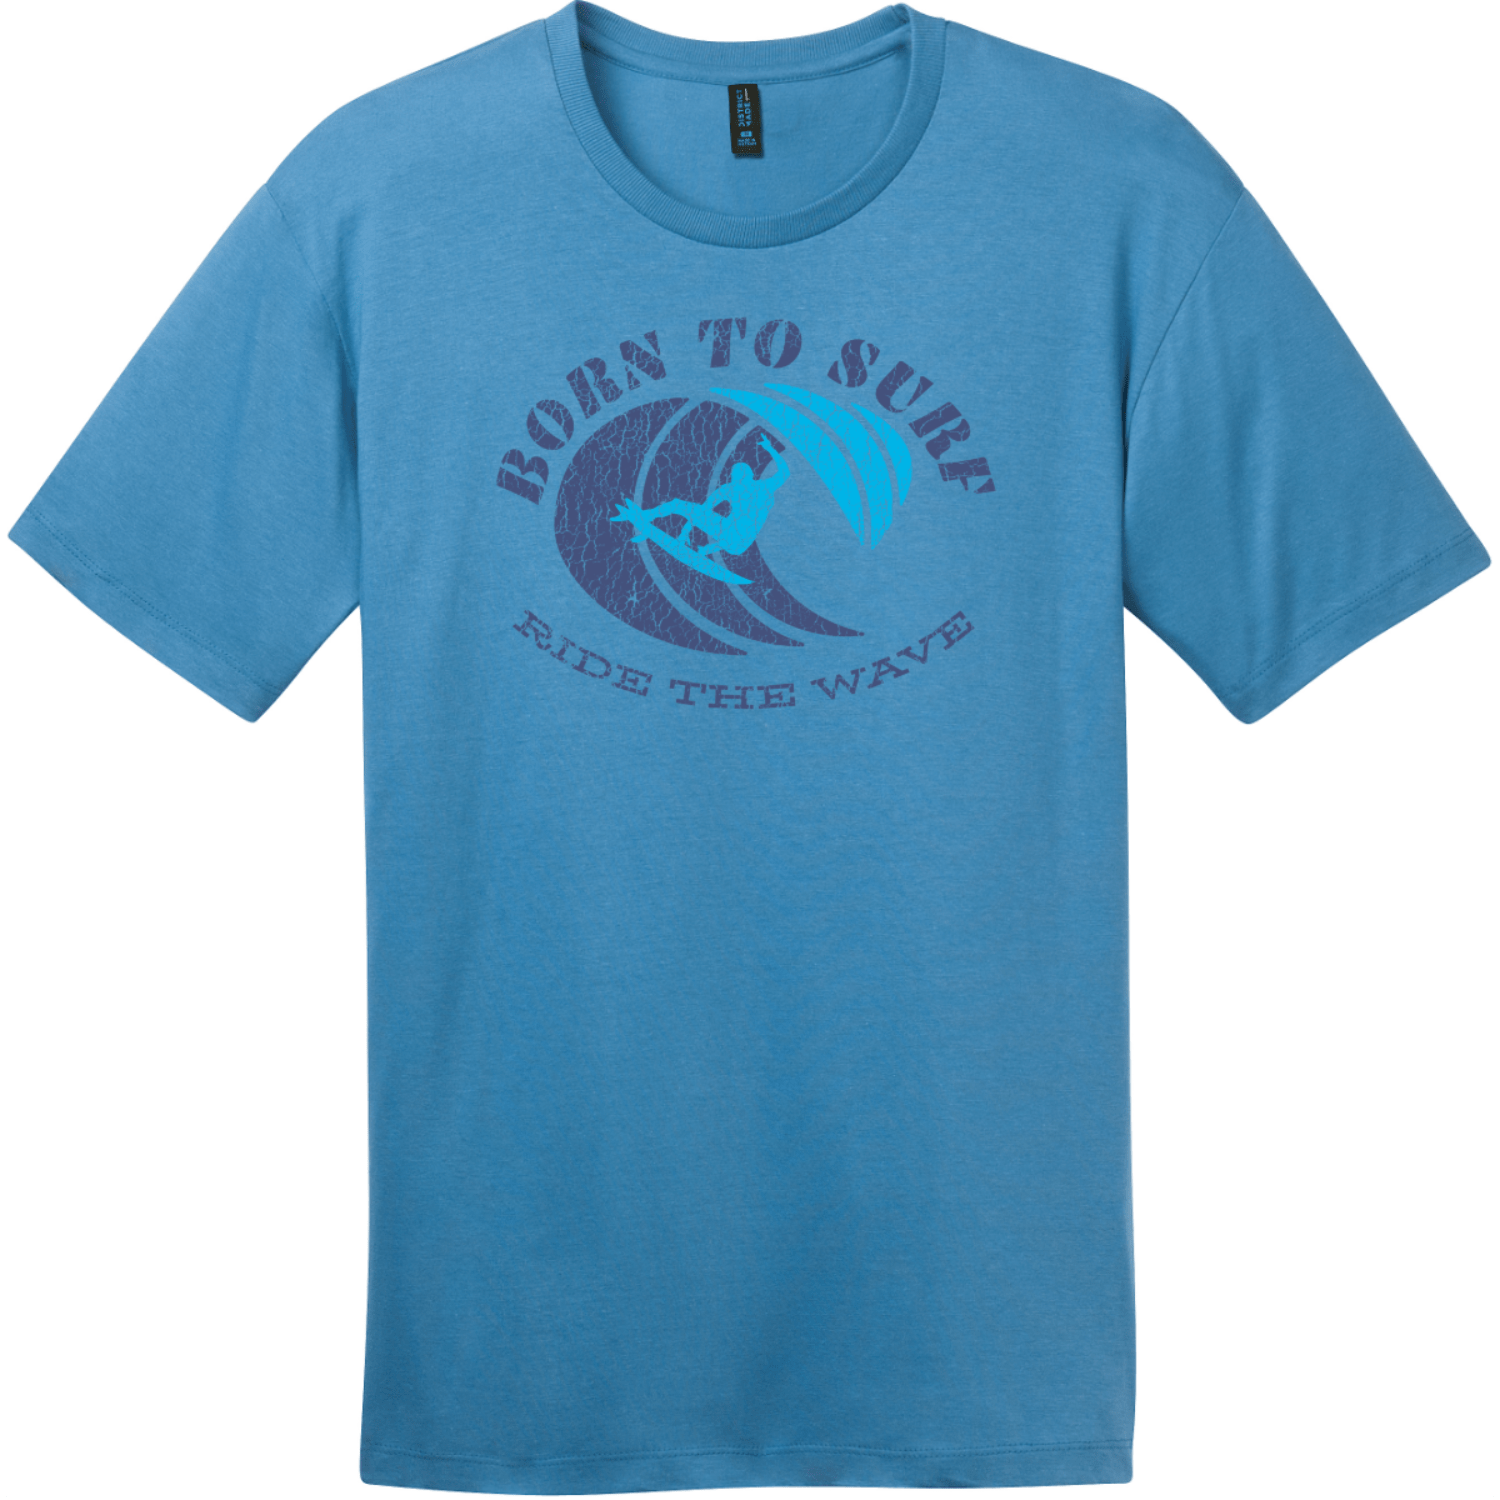 Born To Surf Ride The Wave T-Shirt Clean Denim District Perfect Weight Tee DT104